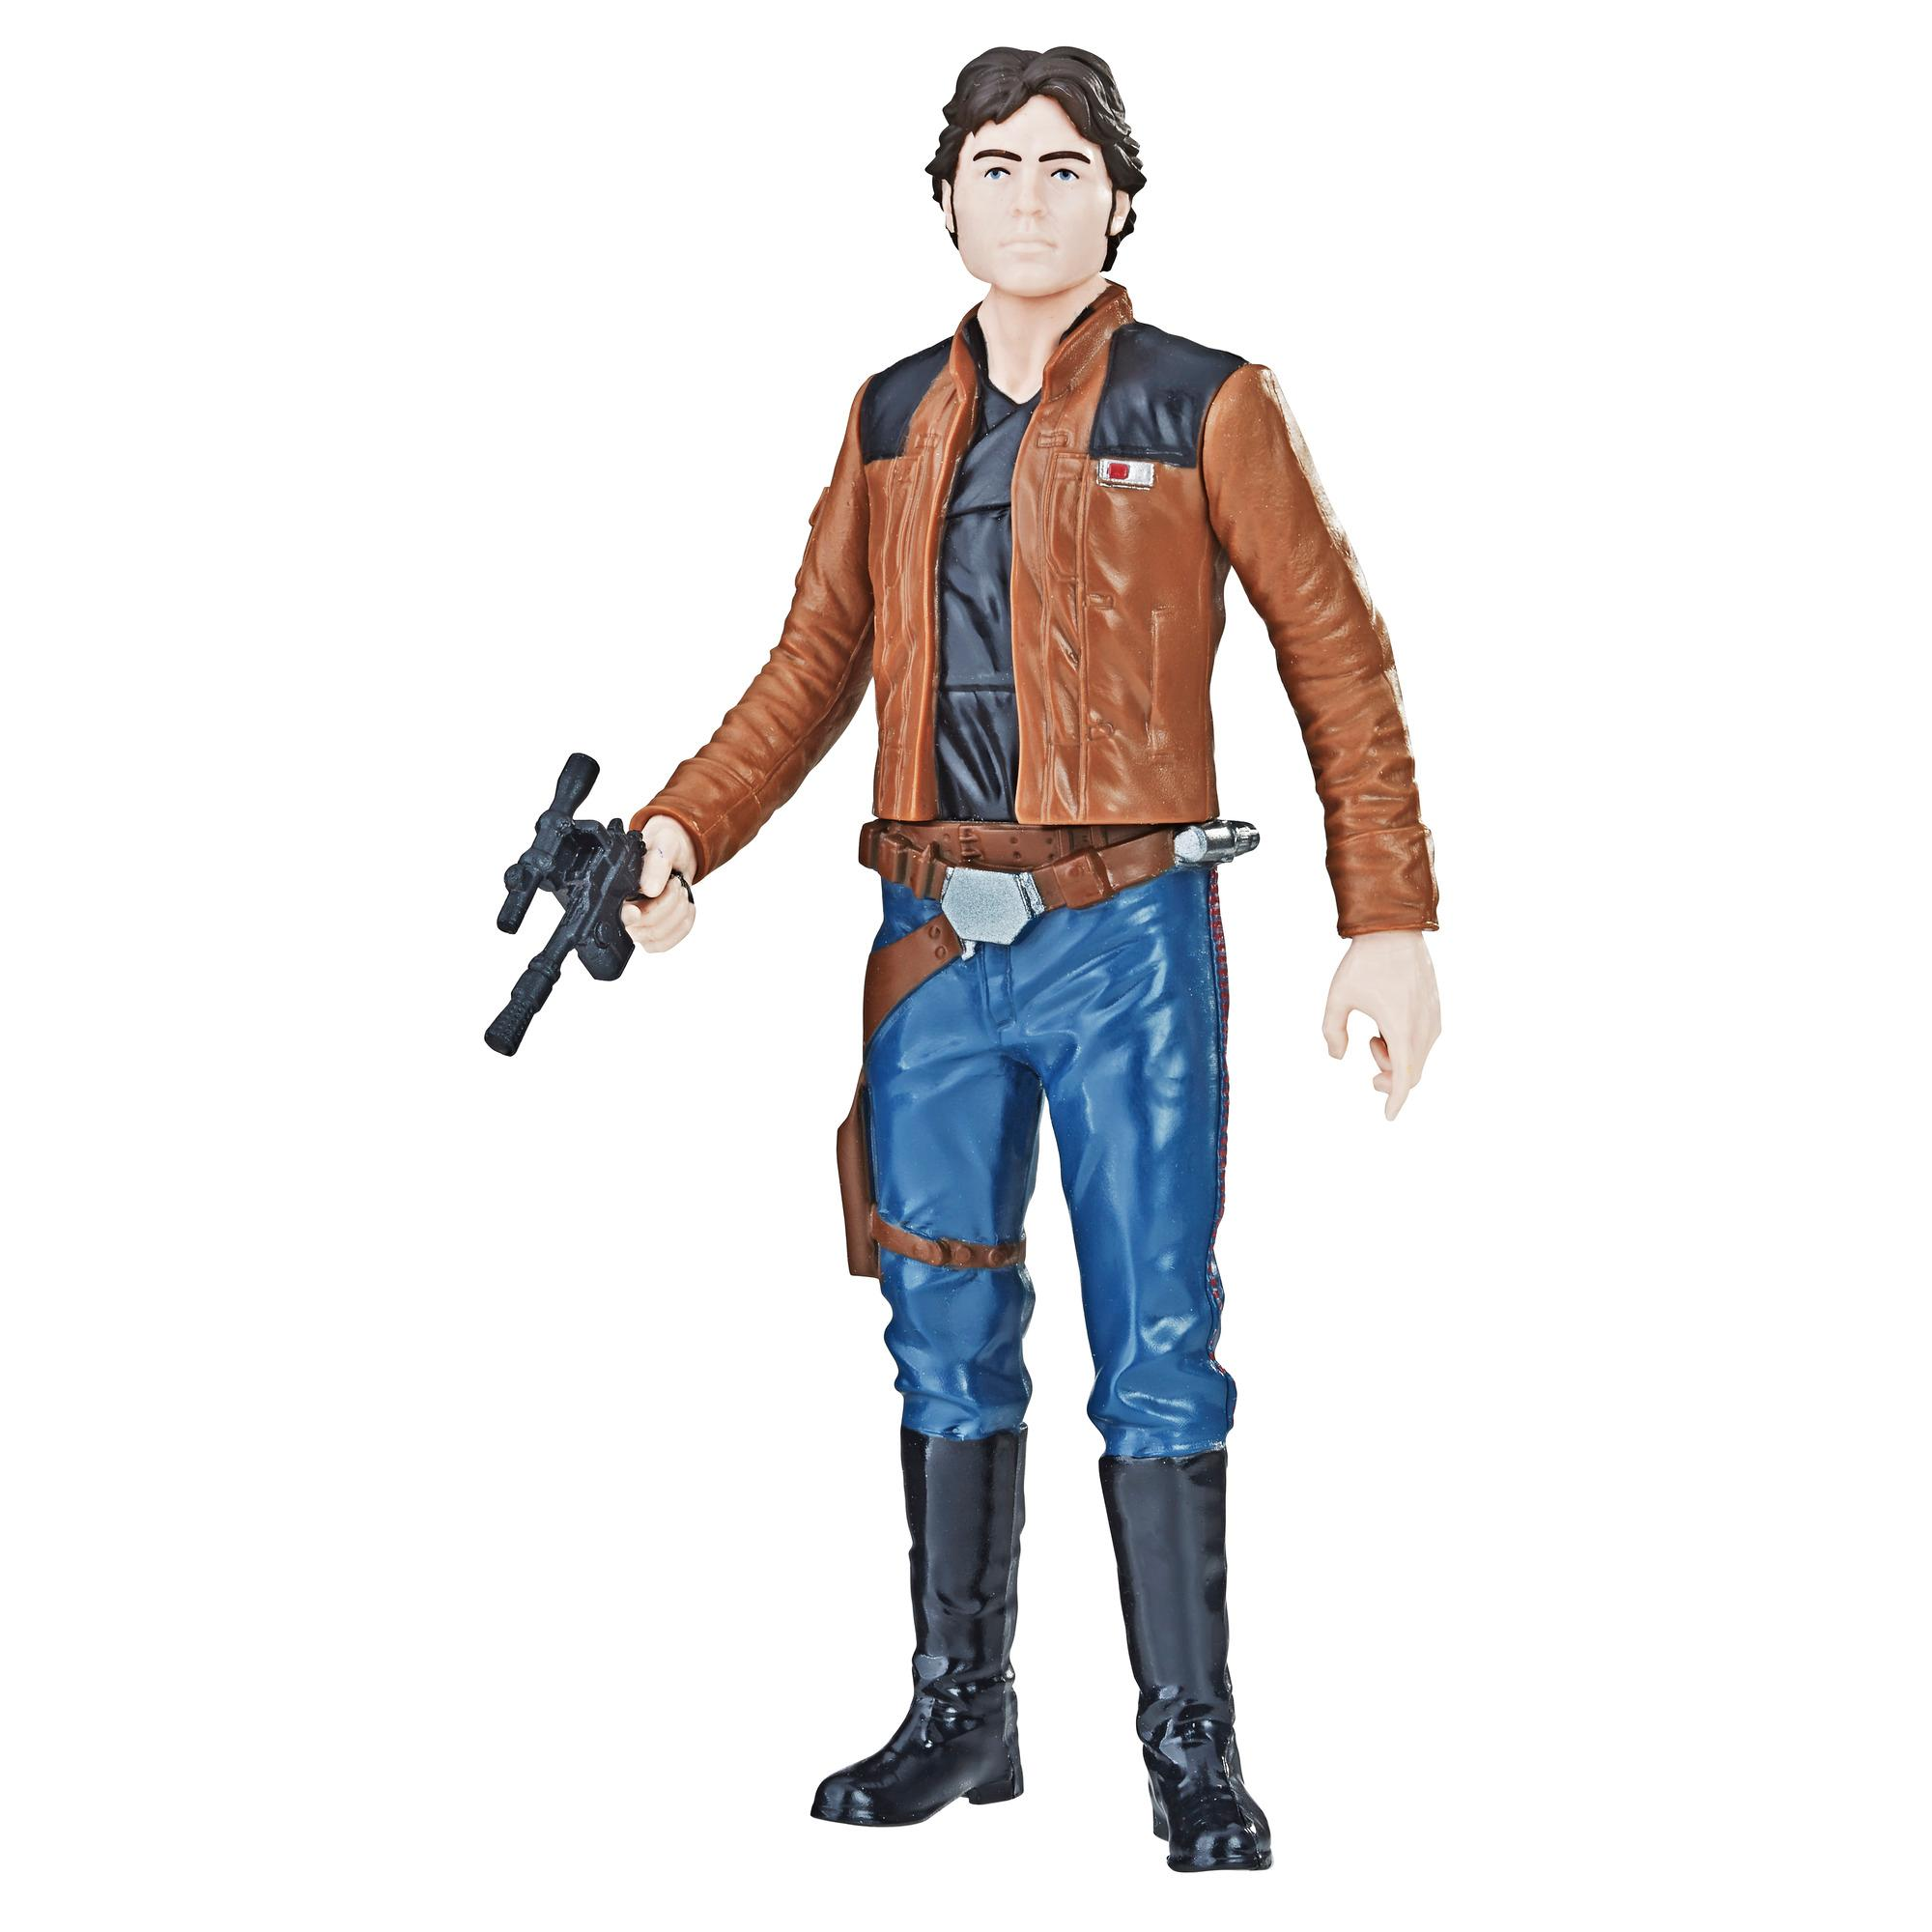 Star Wars Solo: A Star Wars Story Han Solo 6-inch Figure